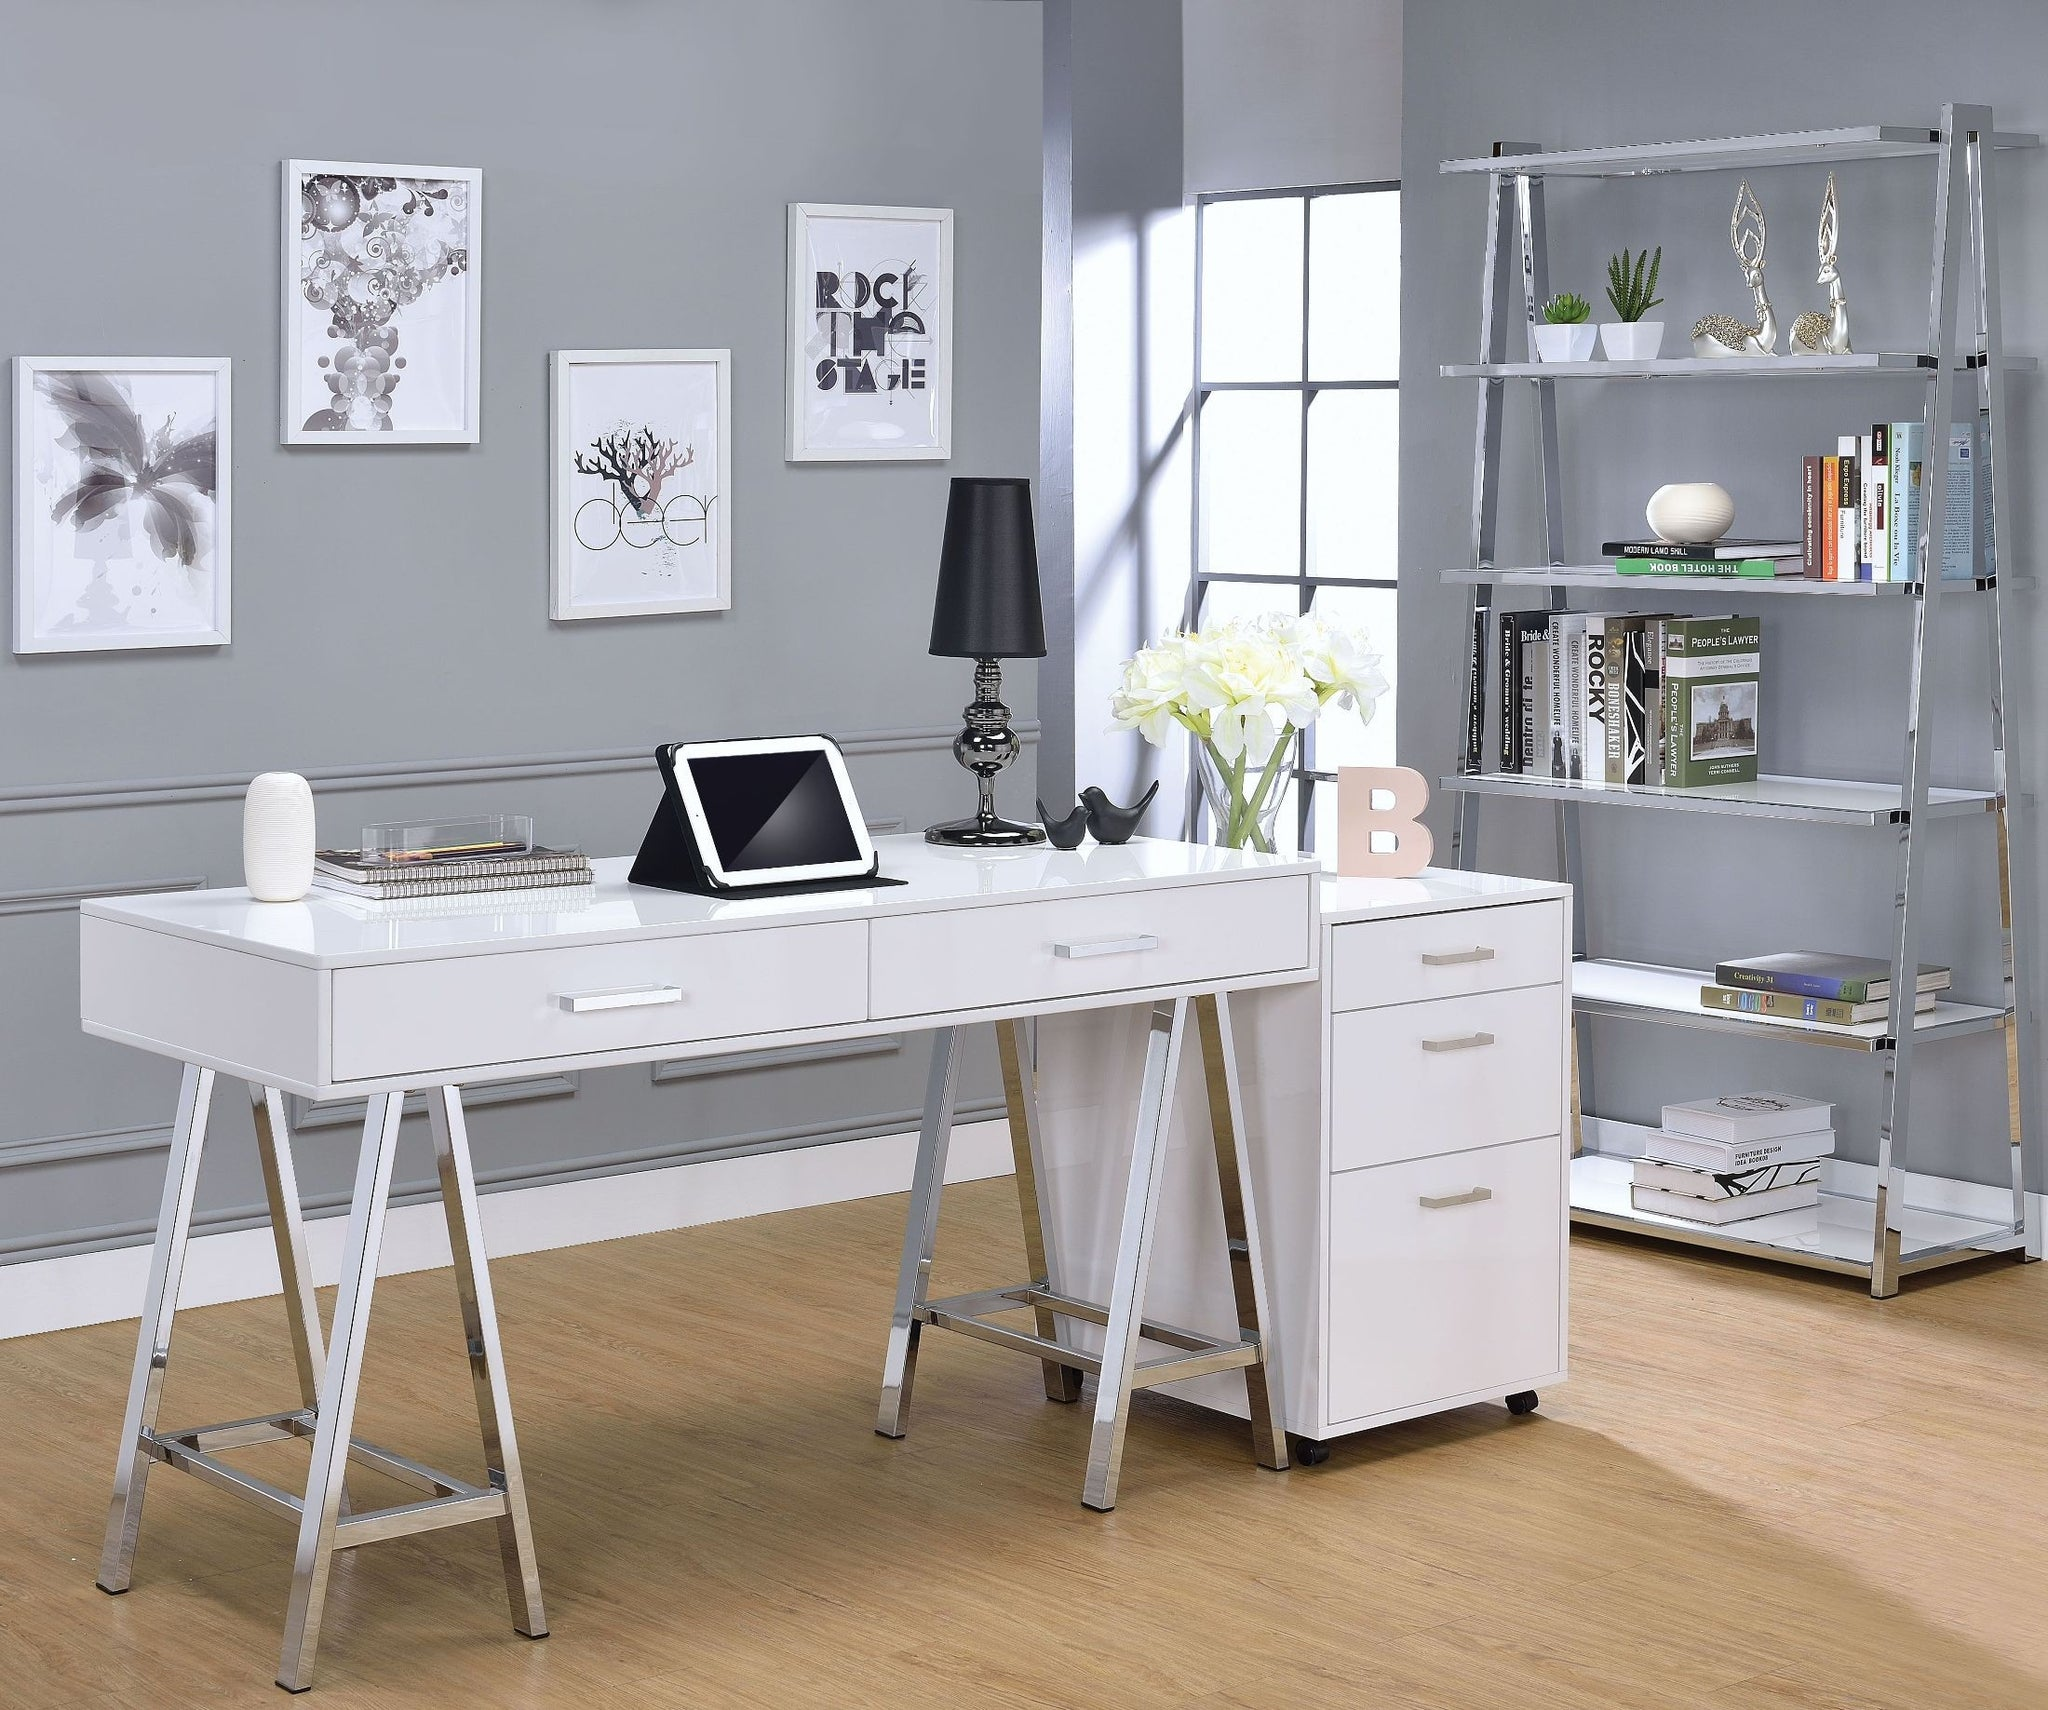 Drella White High Gloss Office Desk ipad on table in office room